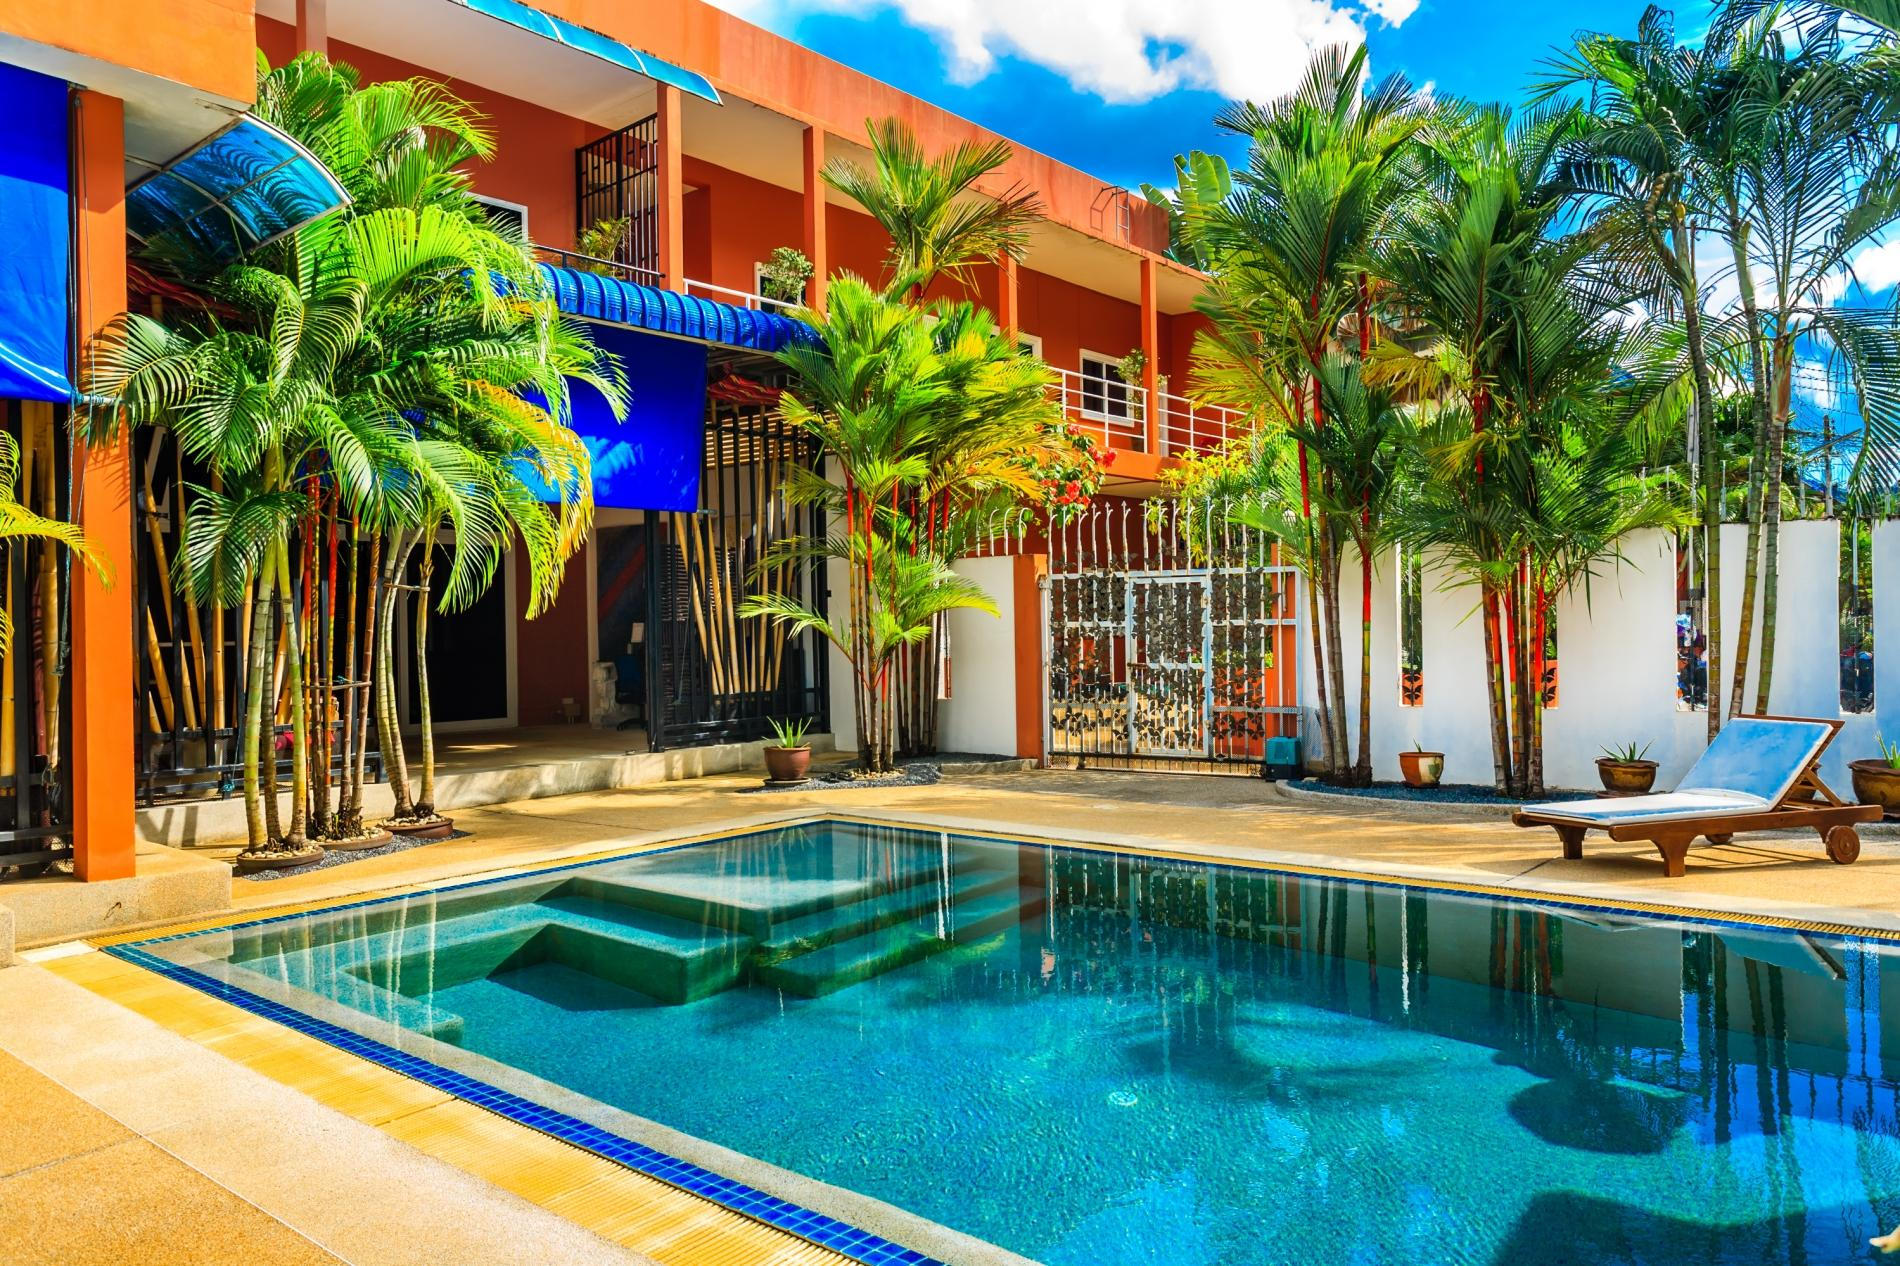 Jungceylon villa - Private swimming pool and billiards in the heart of Patong photo 20389849